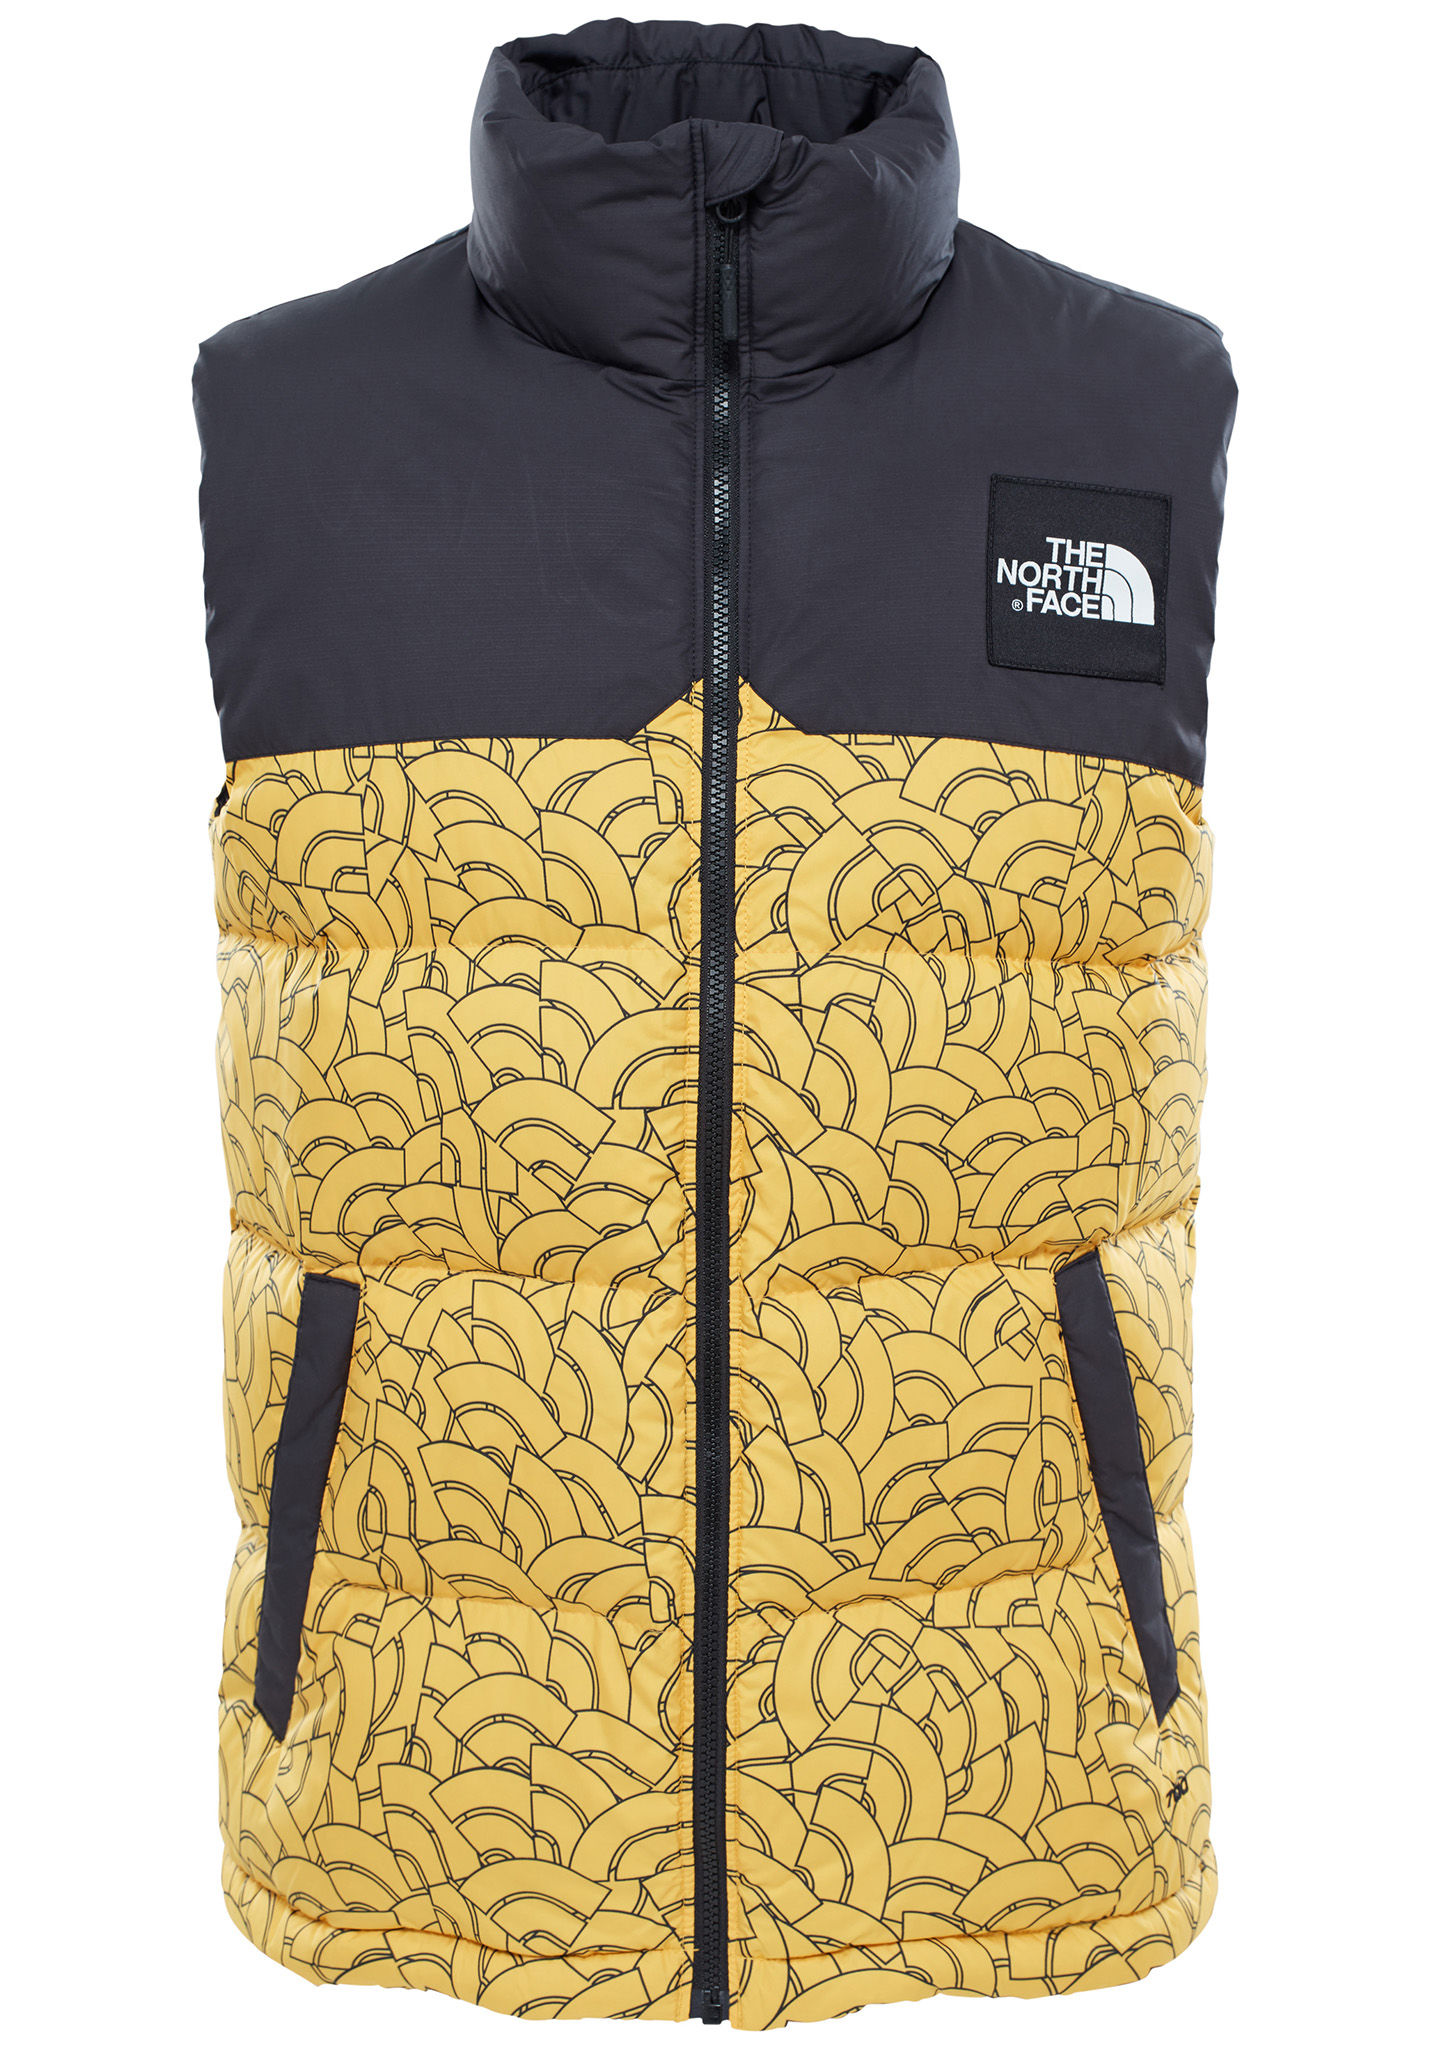 THE NORTH FACE 1992 Nuptse - Outdoor Vest for Men - Yellow - Planet Sports 757222e51